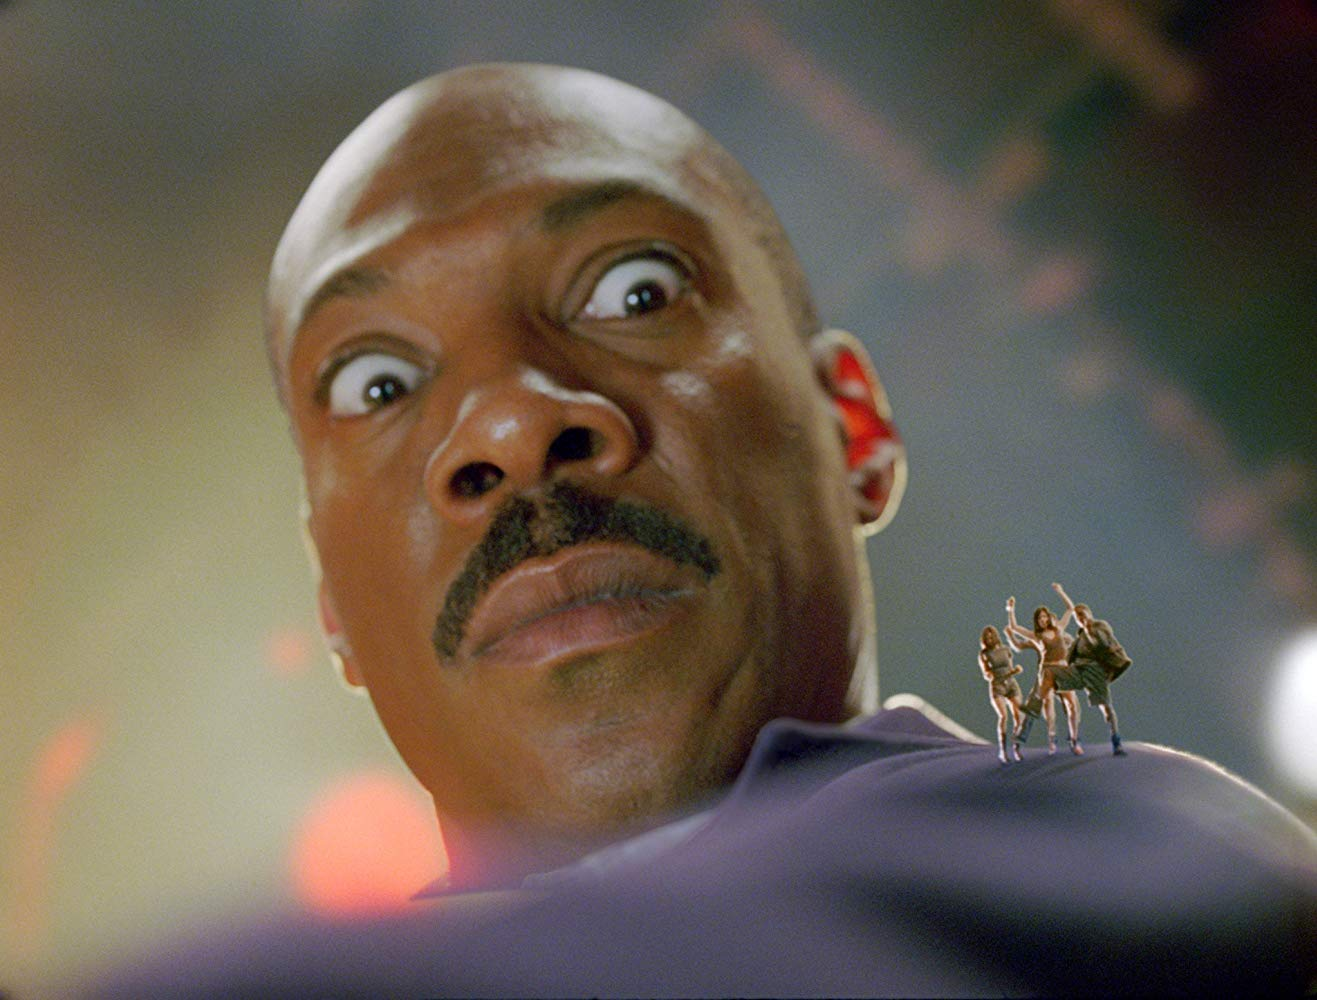 An alien spaceship built to look like Eddie Murphy along with its crew in Meet Dave (2008)